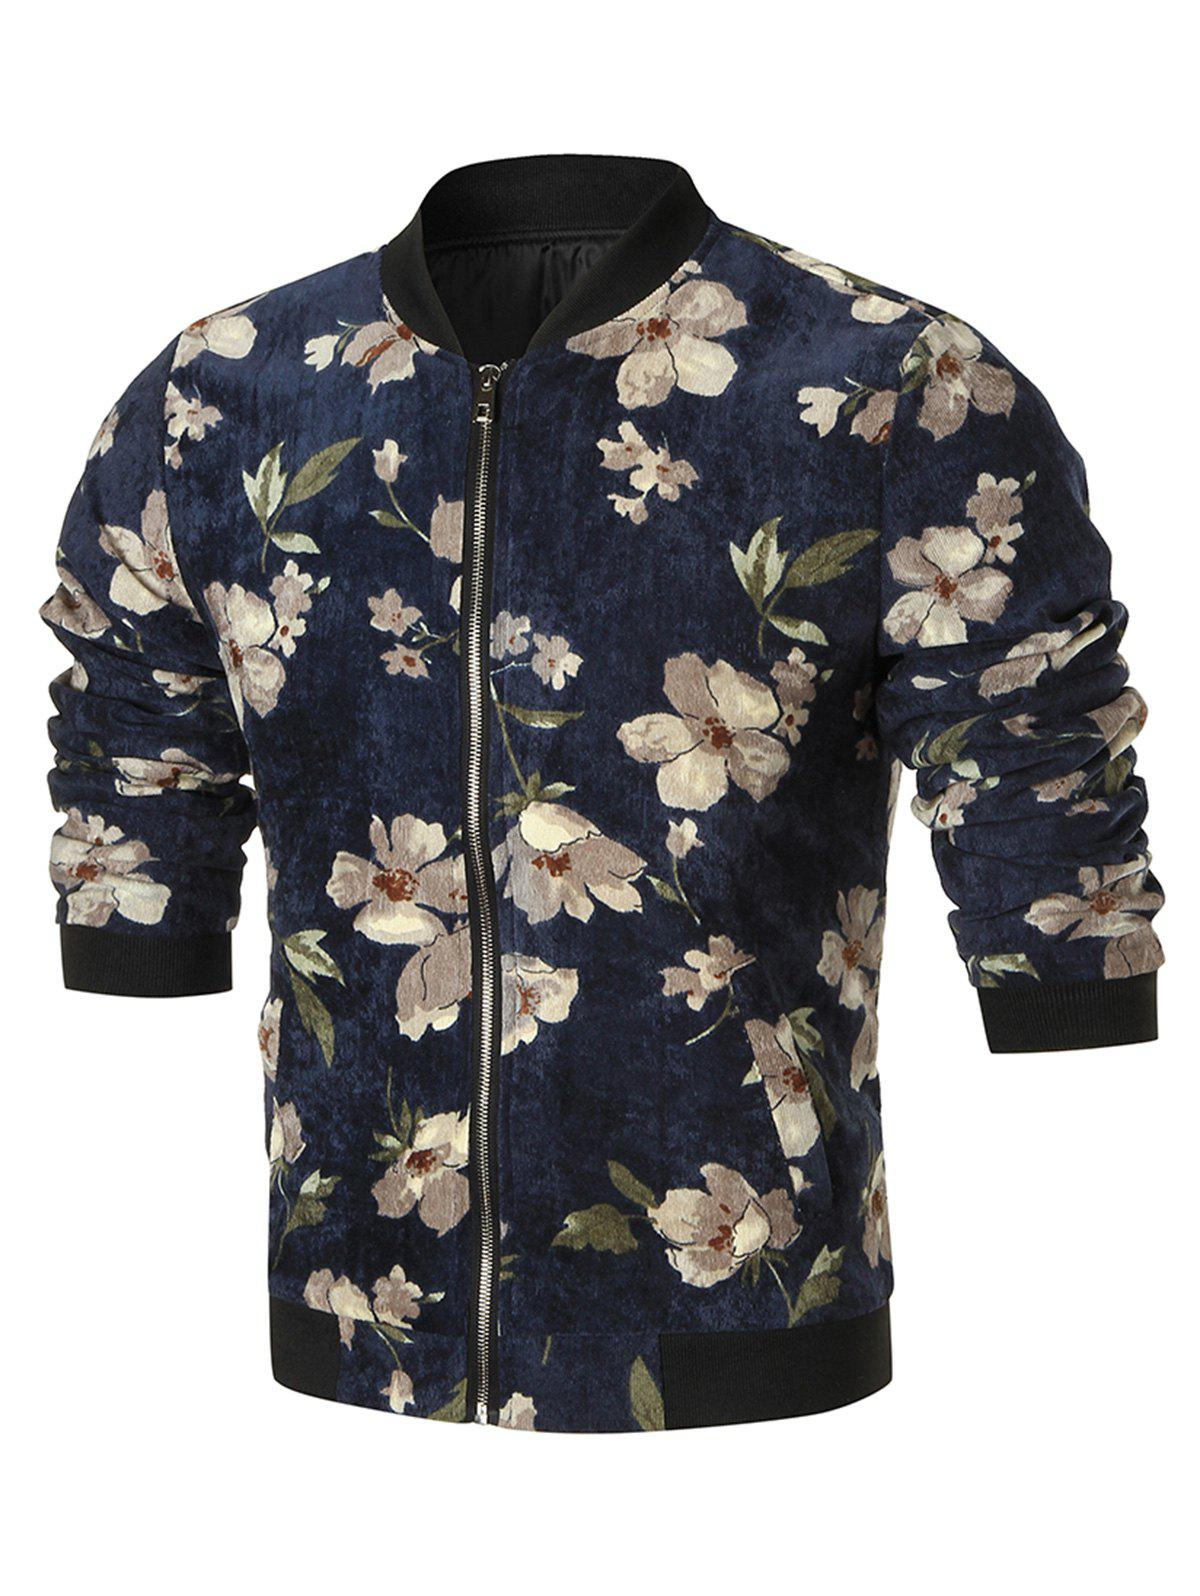 Stand Collar Flower Corduroy Jacket - CADETBLUE XL